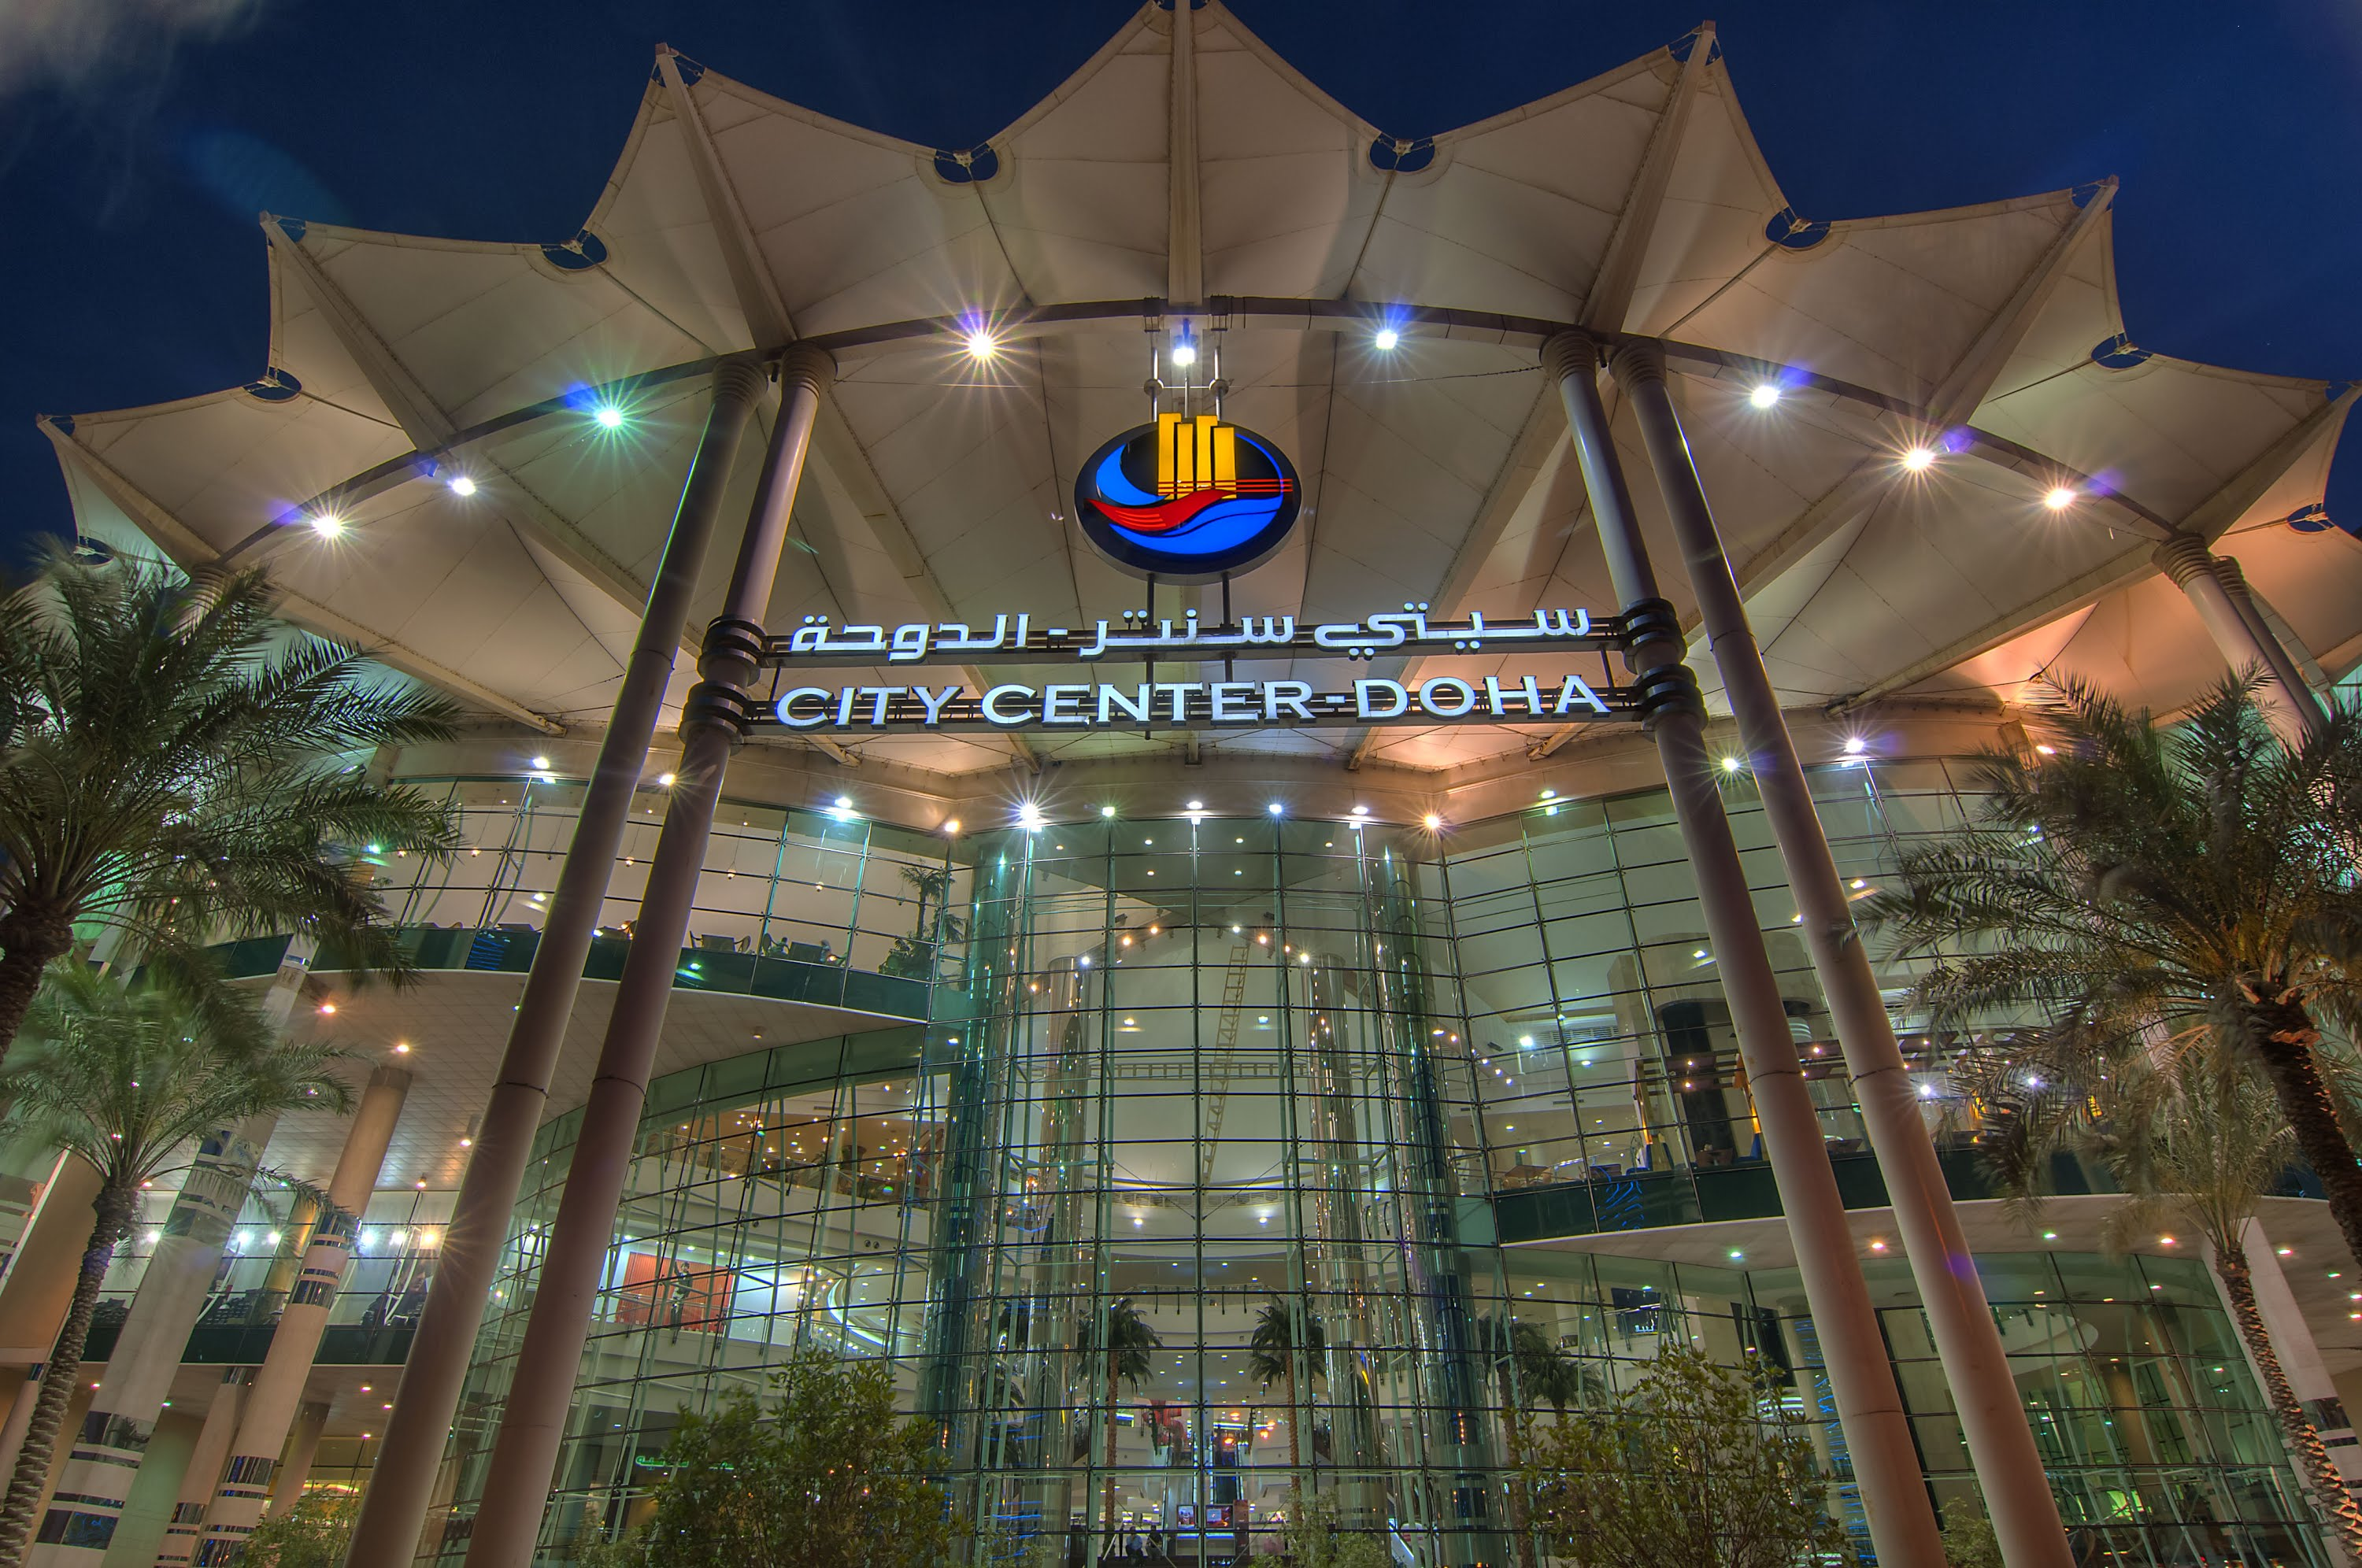 City Center Doha